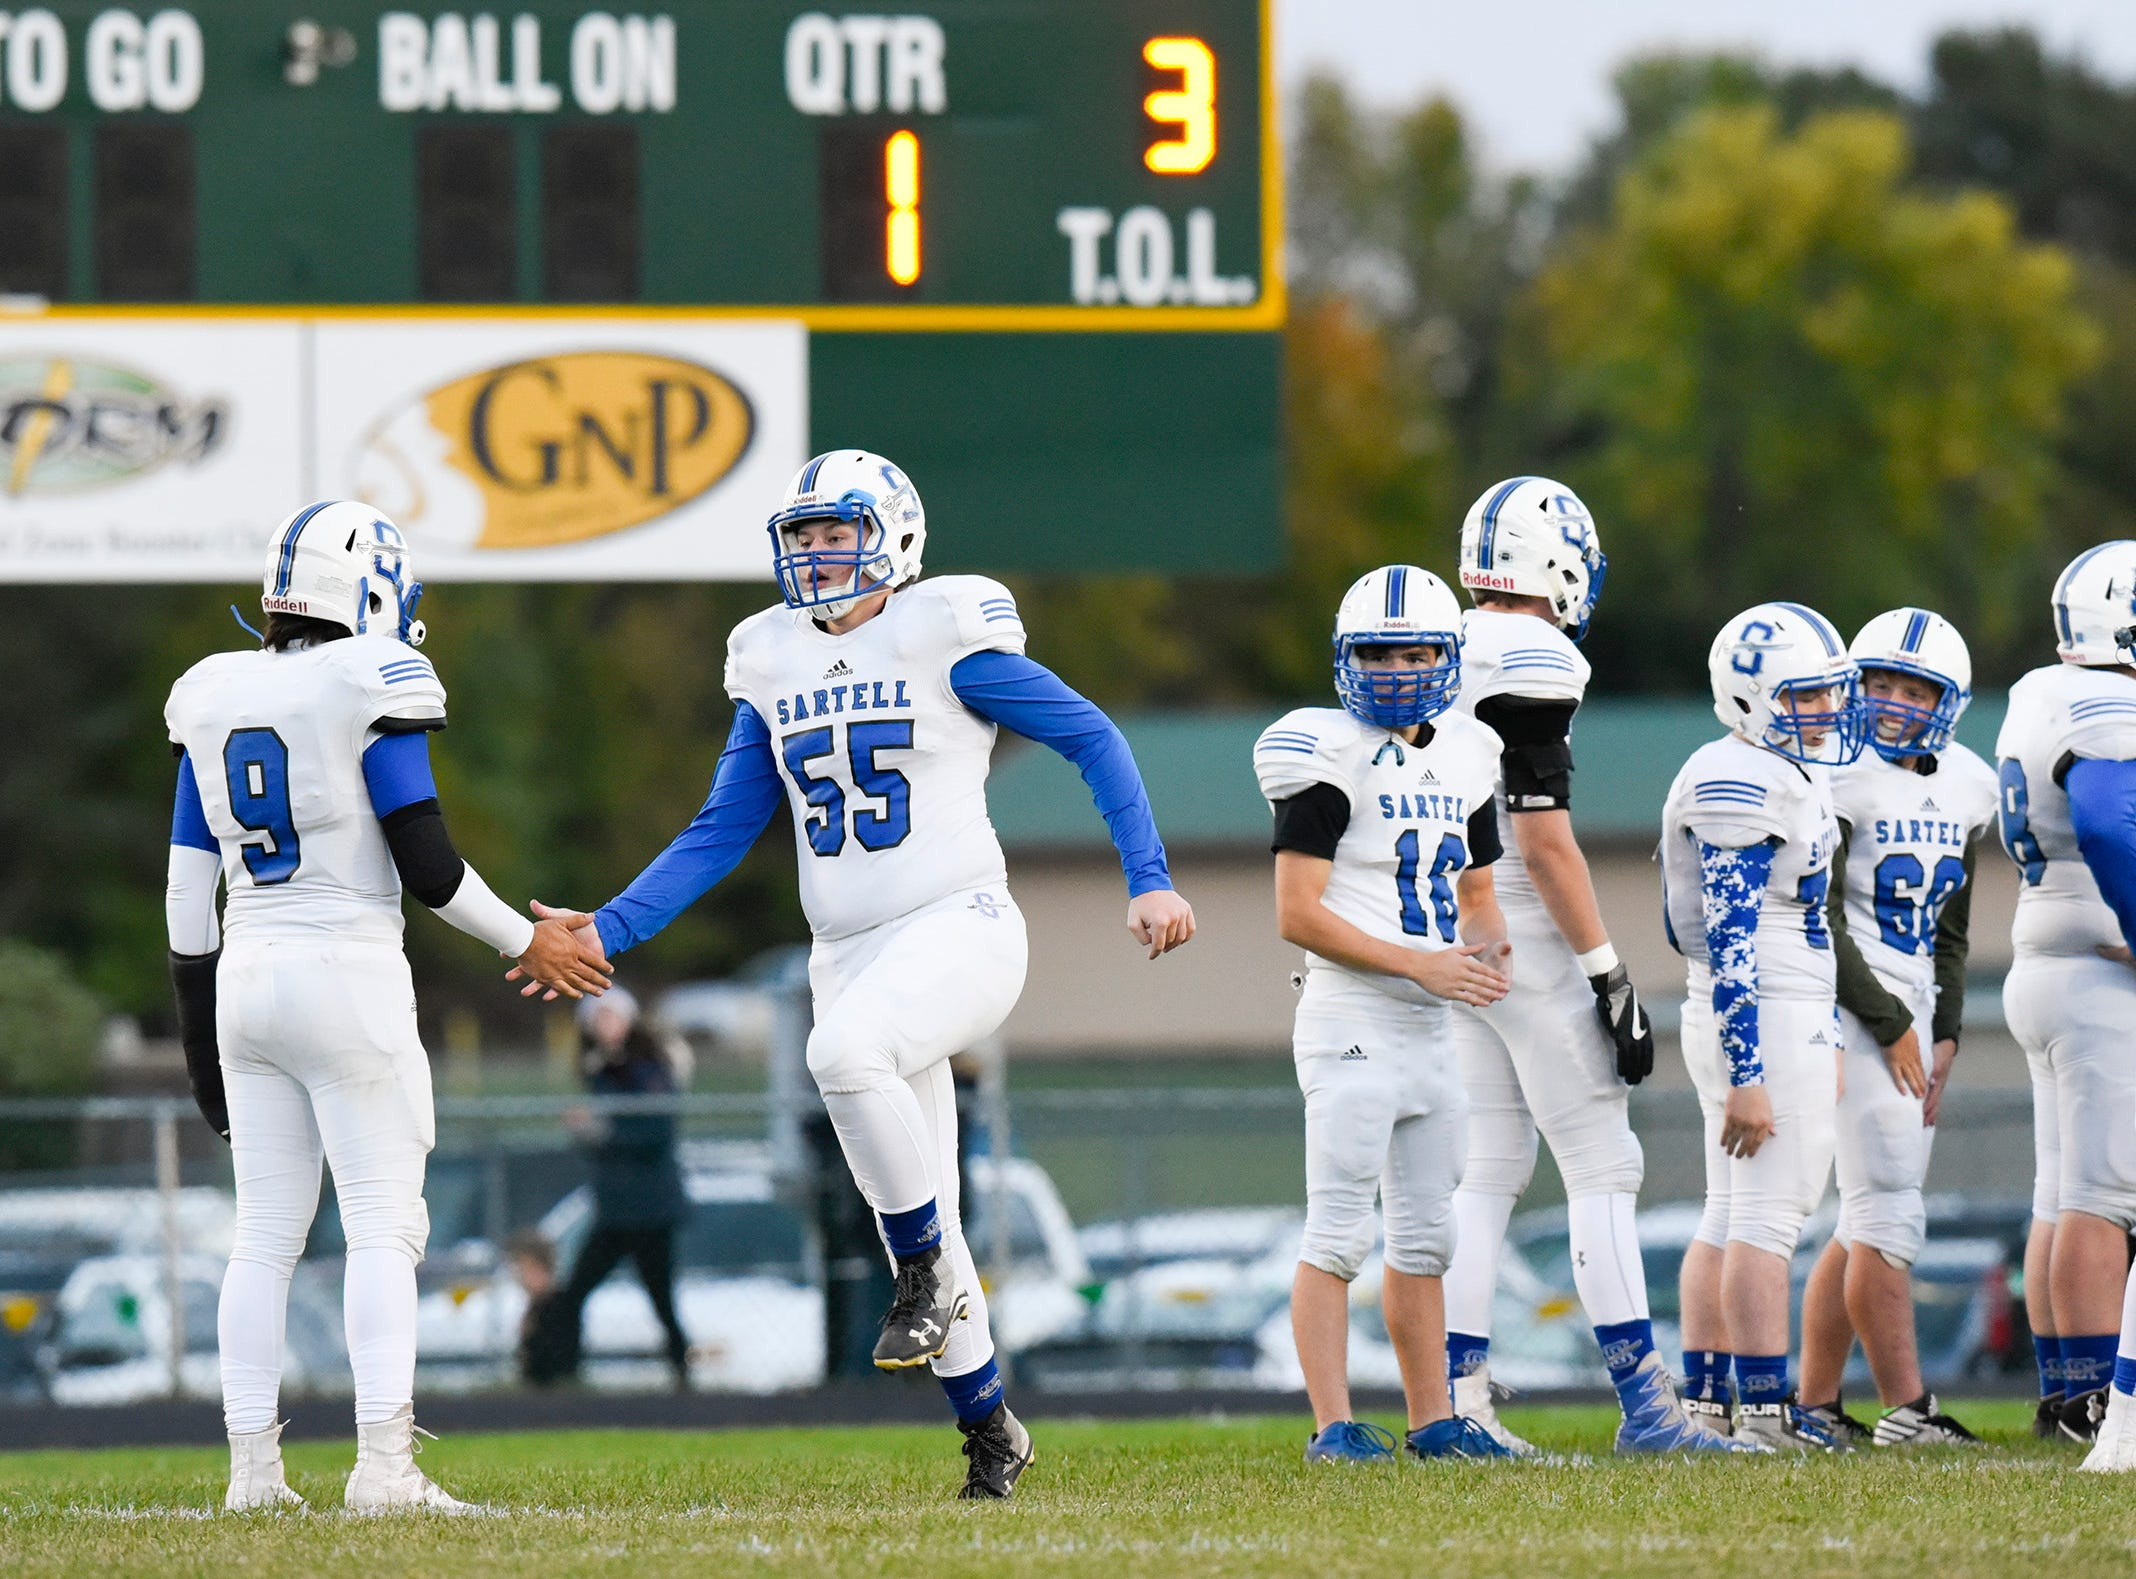 Sartell players are introduced before the start of the game against Sauk Rapids Friday, Sept. 28, in Sauk Rapids.